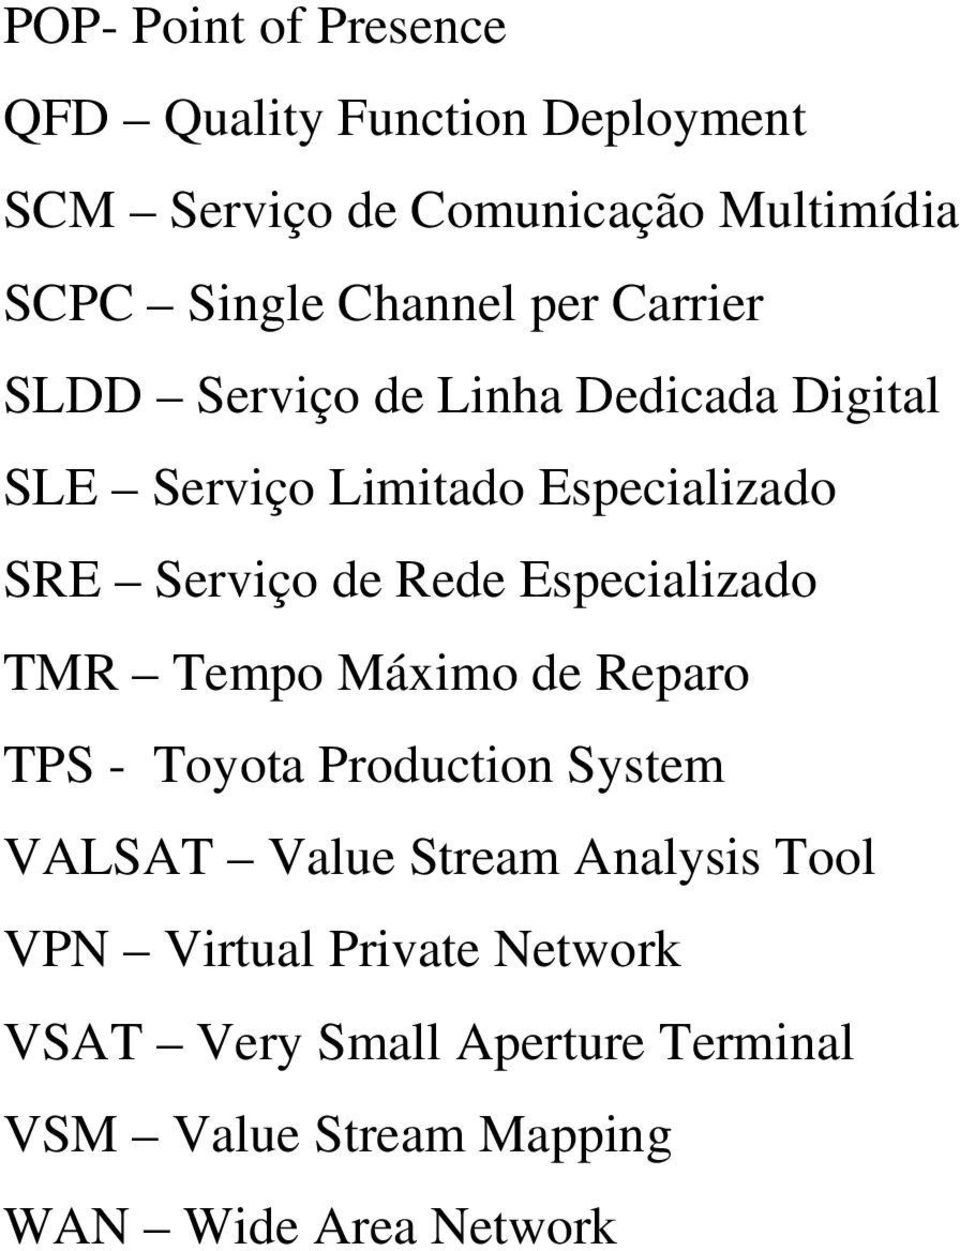 Rede Especializado TMR Tempo Máximo de Reparo TPS - Toyota Production System VALSAT Value Stream Analysis